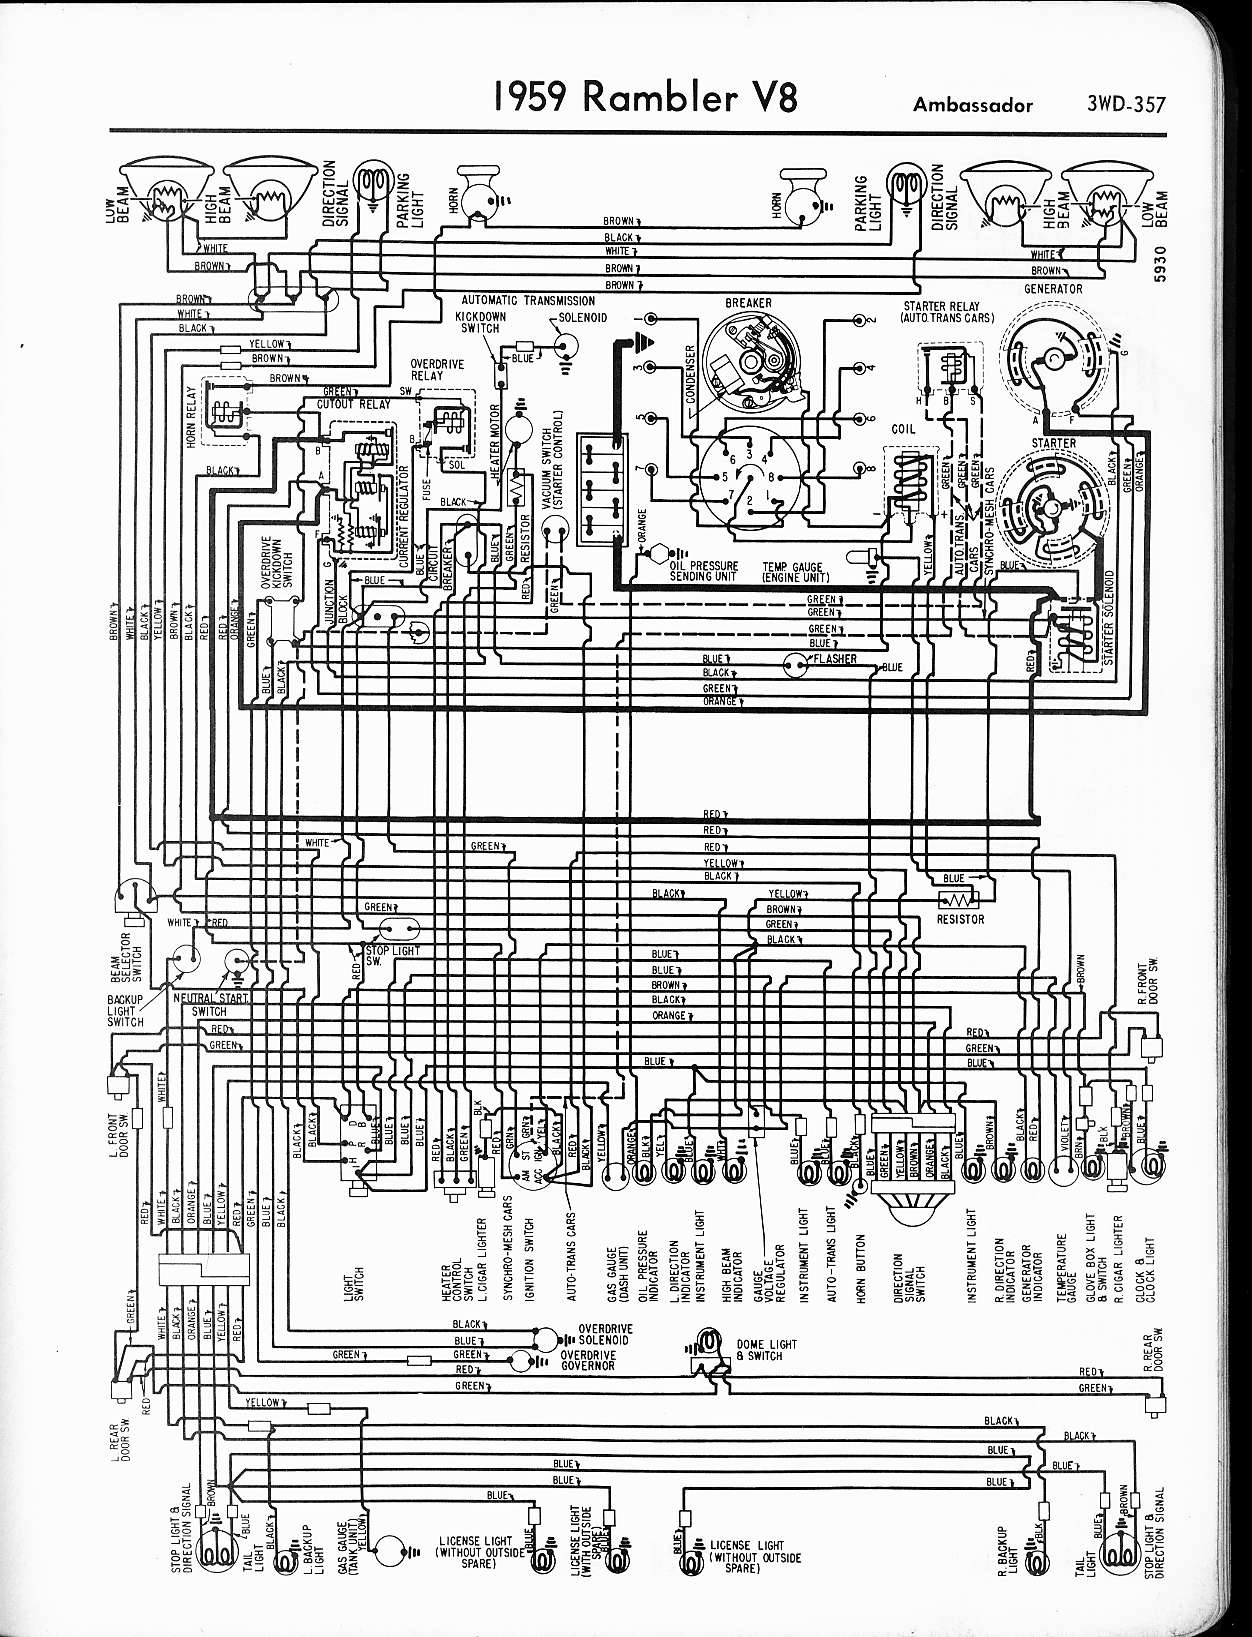 rambler wiring diagrams the old car manual project rh oldcarmanualproject com rebel wiring kit instructions Honda Rebel 250 Wiring Diagram